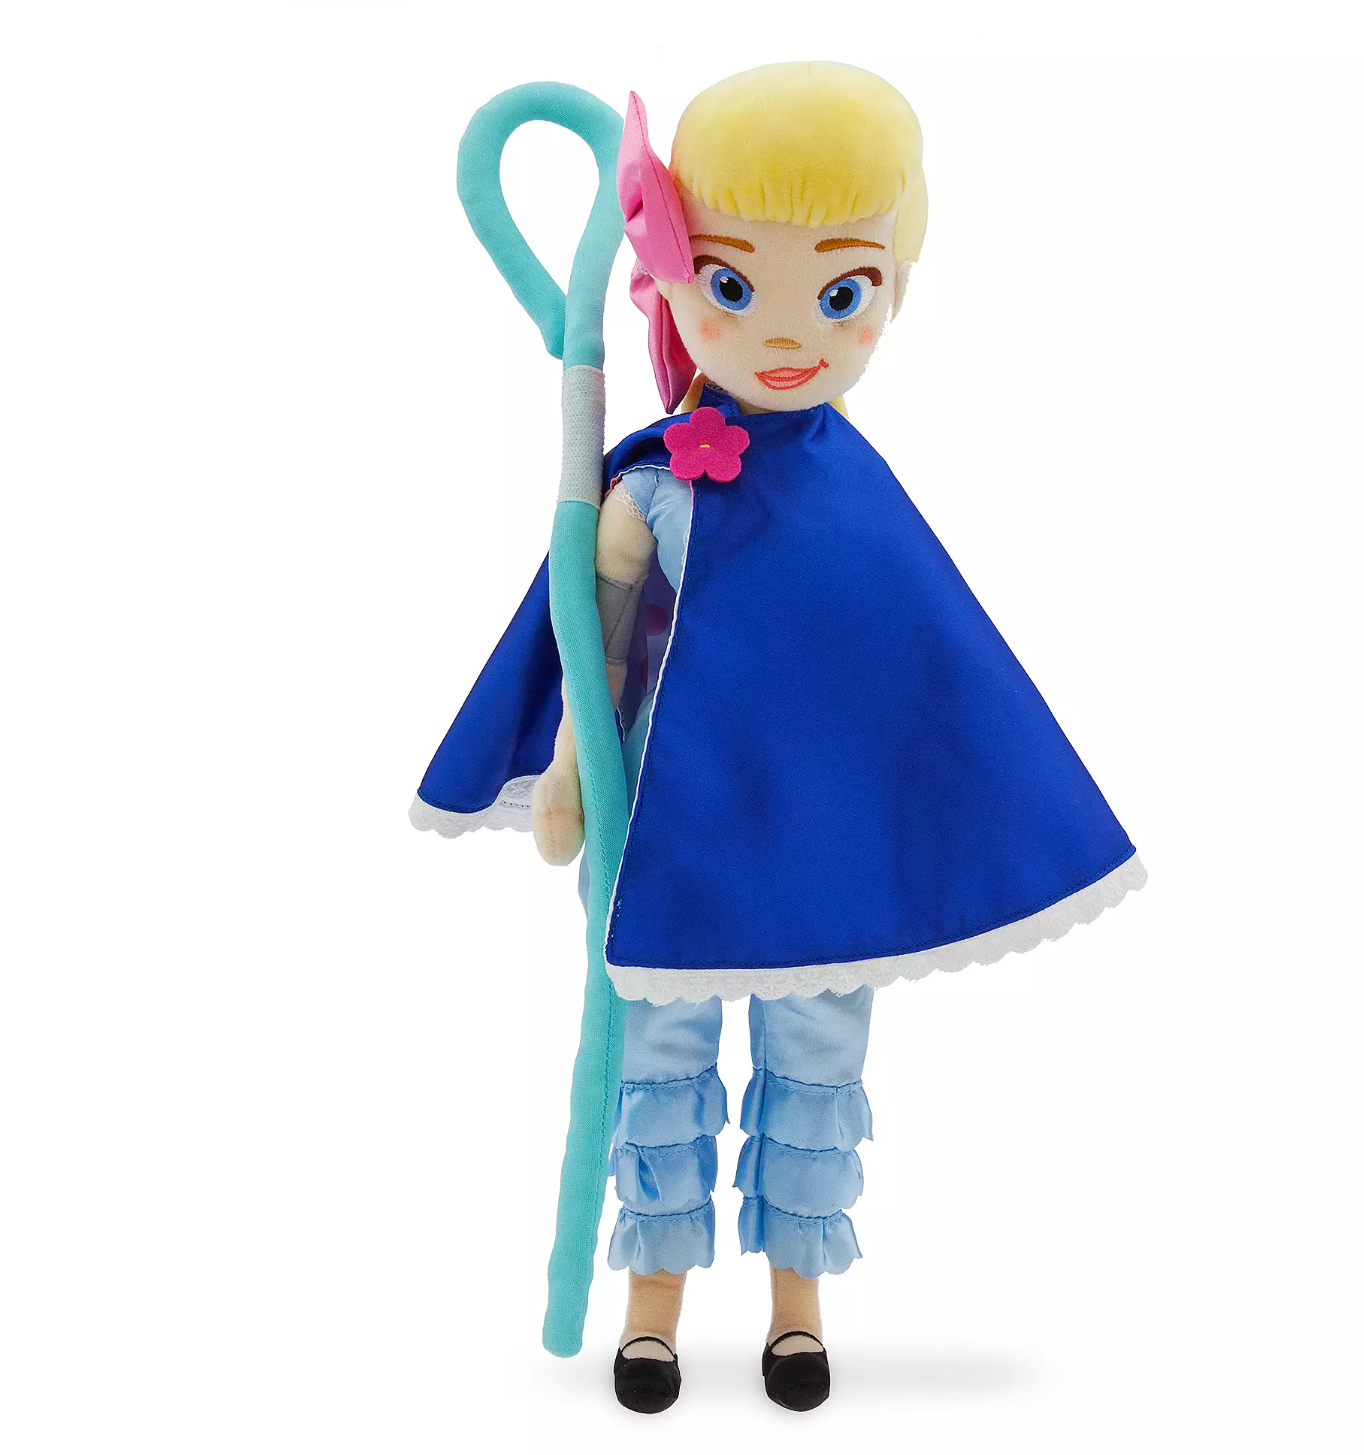 Little Bo Peep Plush – Toy Story 4